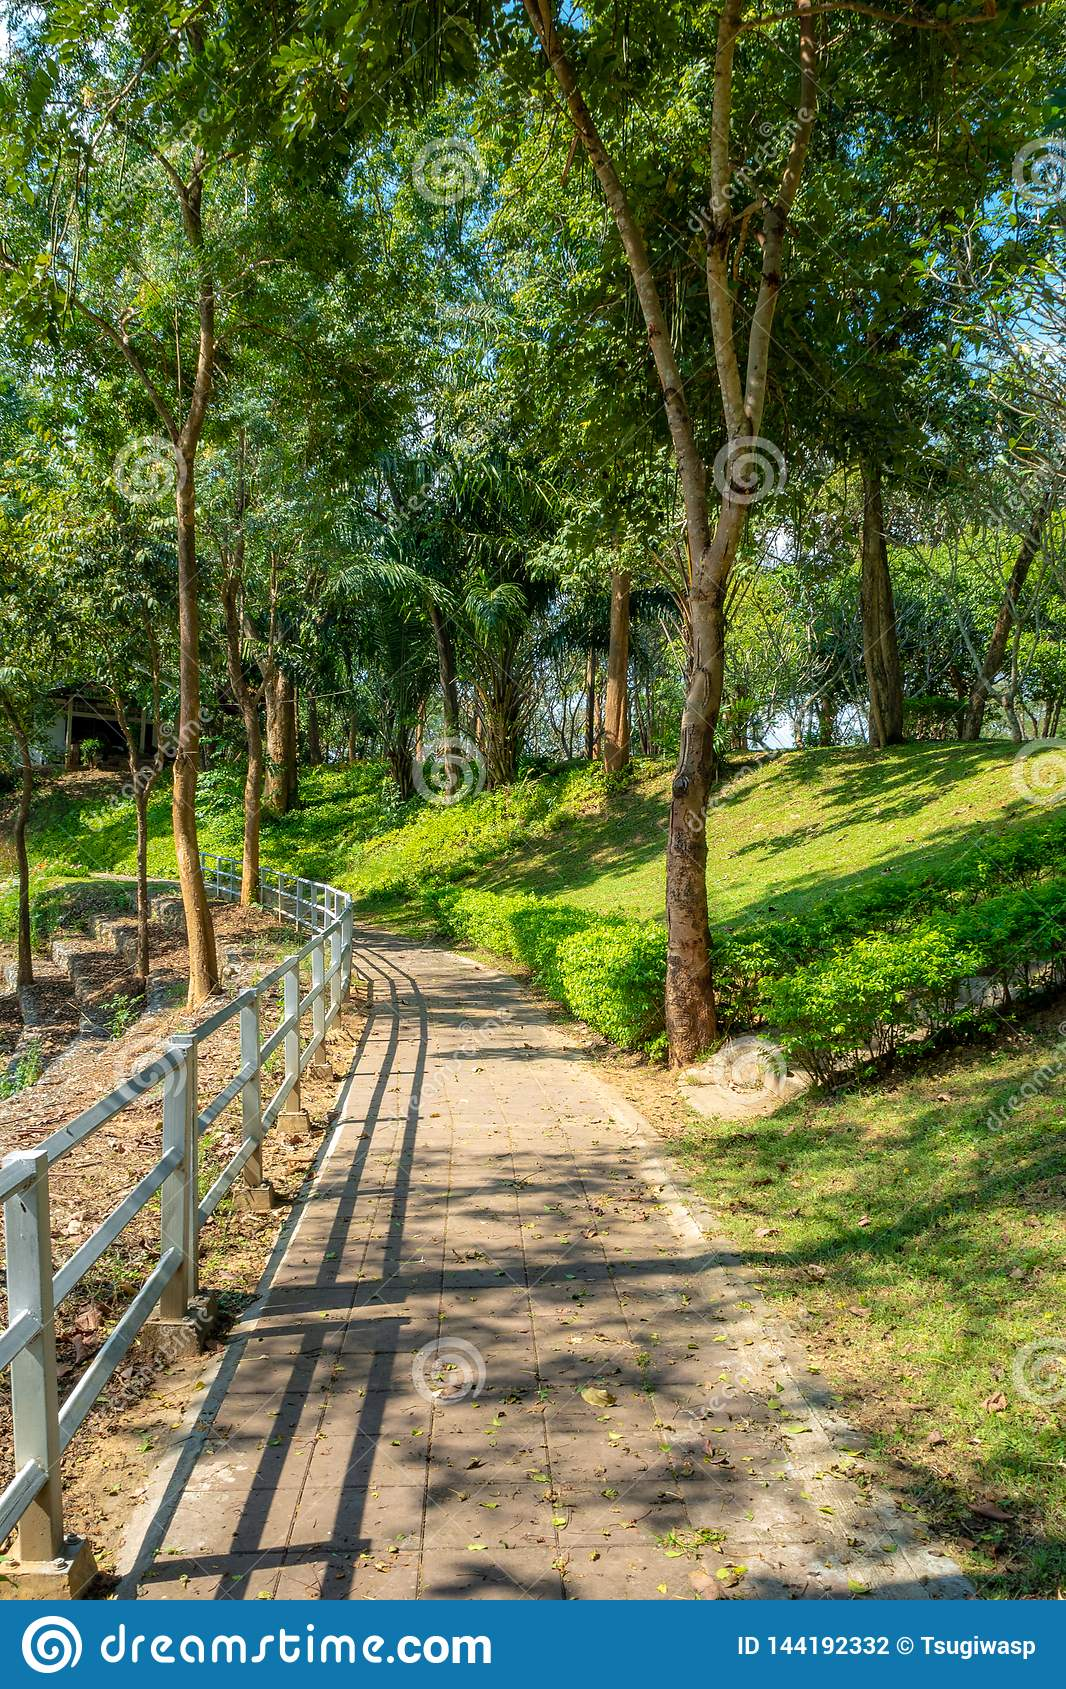 Empty walkway with wooden rails and lush trees with sunlight in park